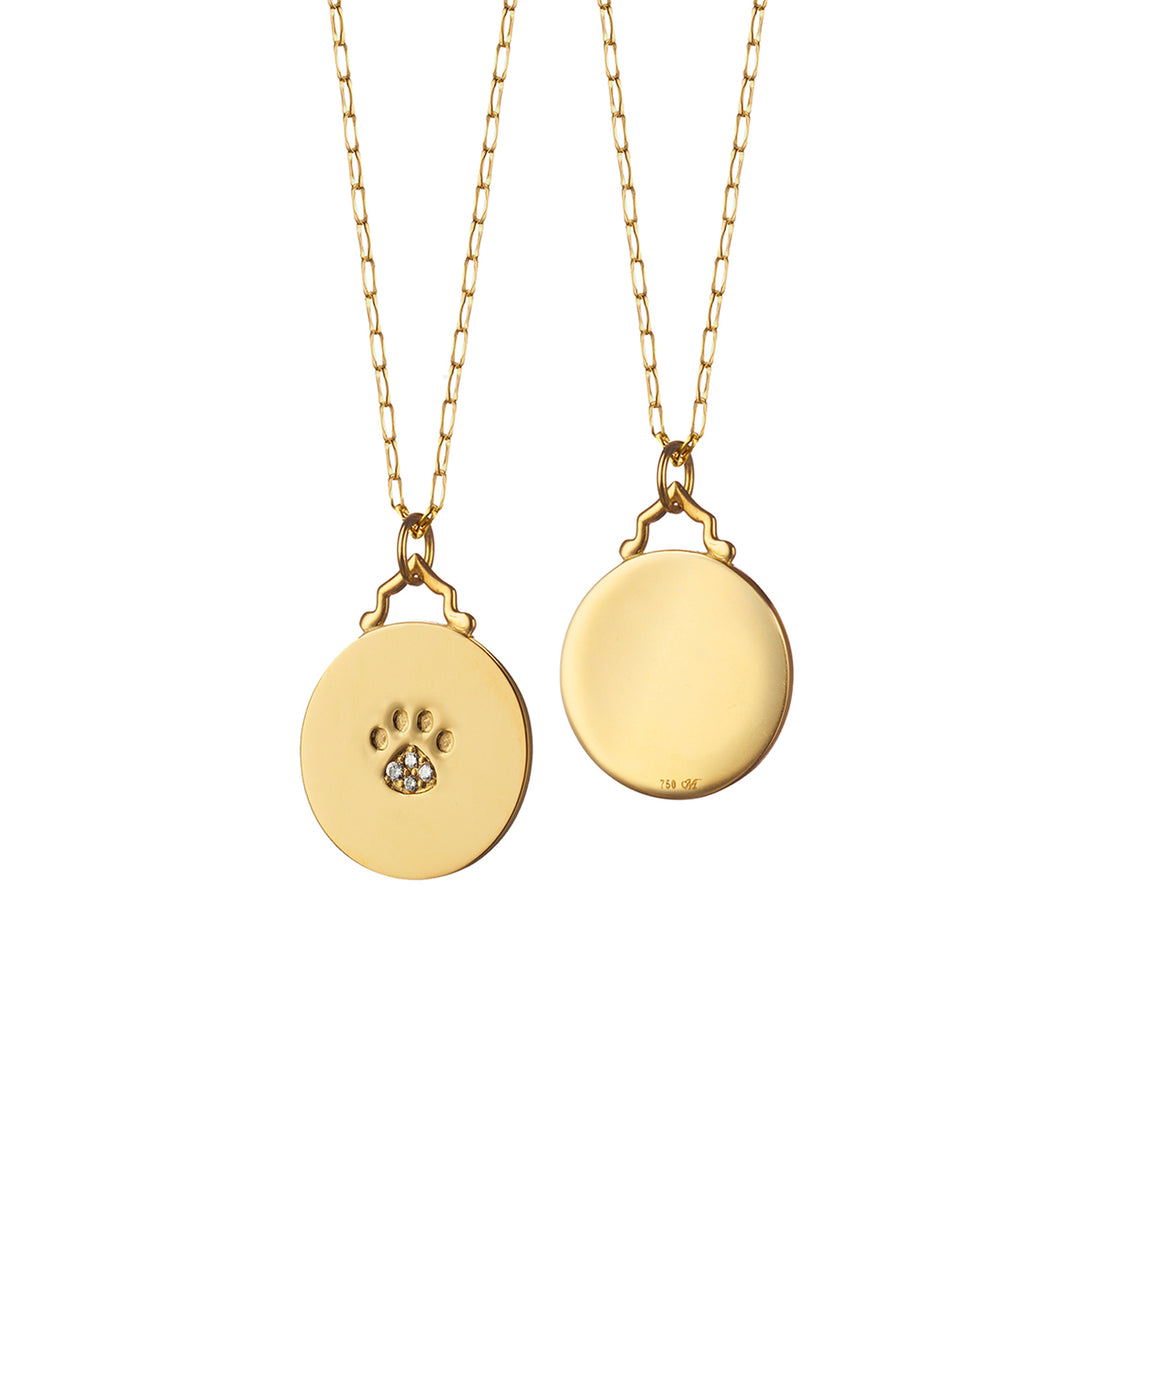 Pawprint charm on chain